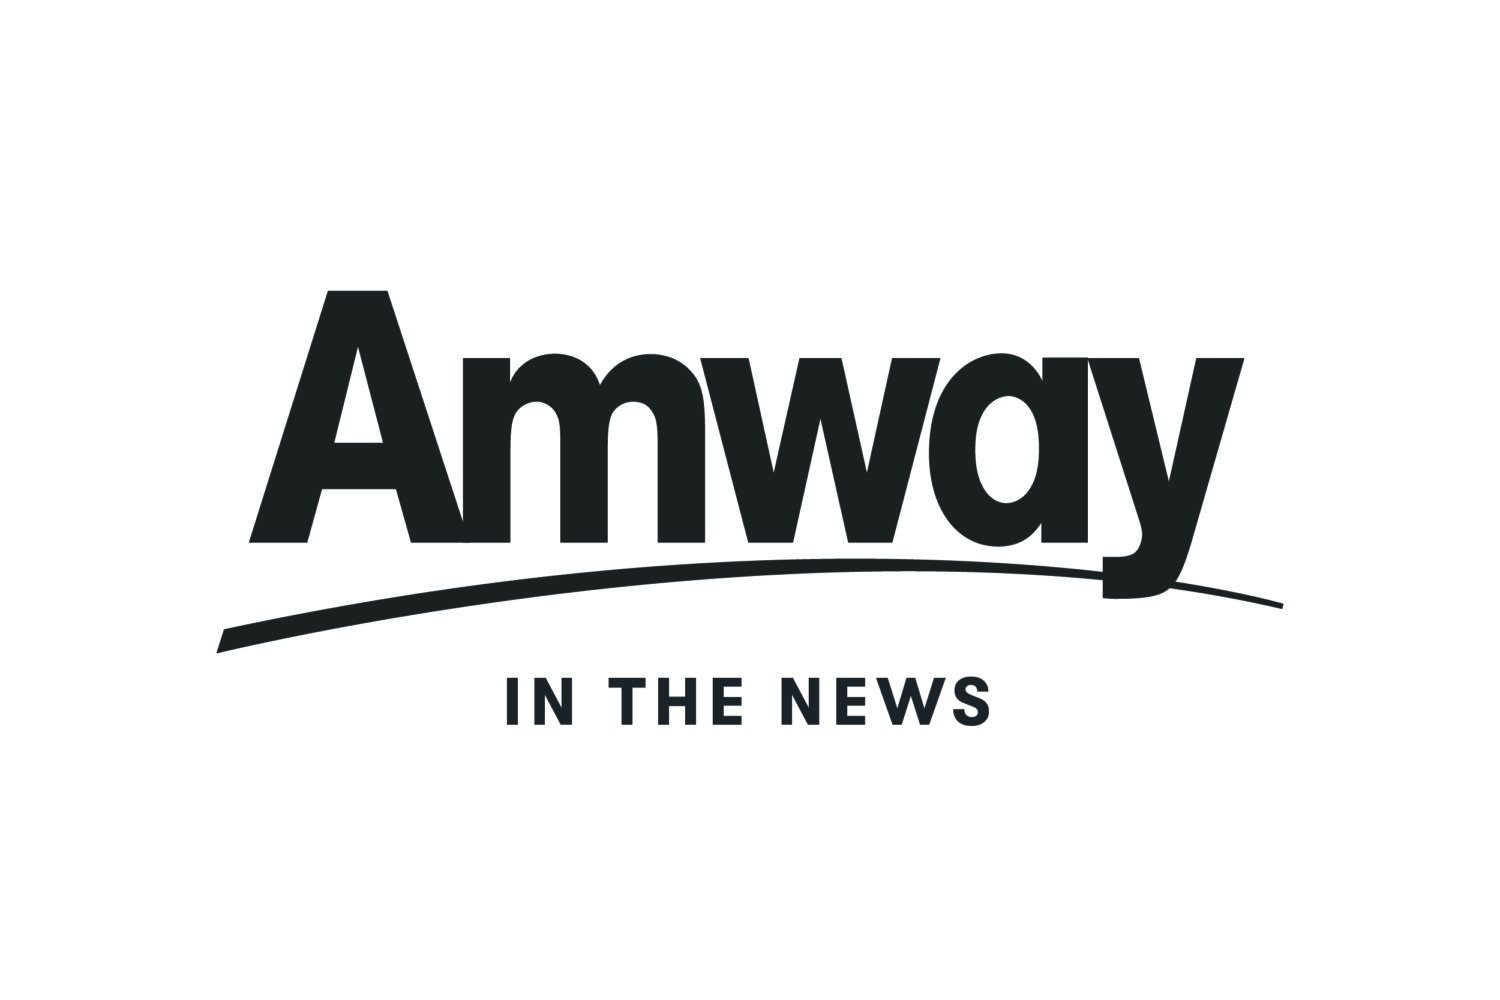 Amway statement on COVID-19